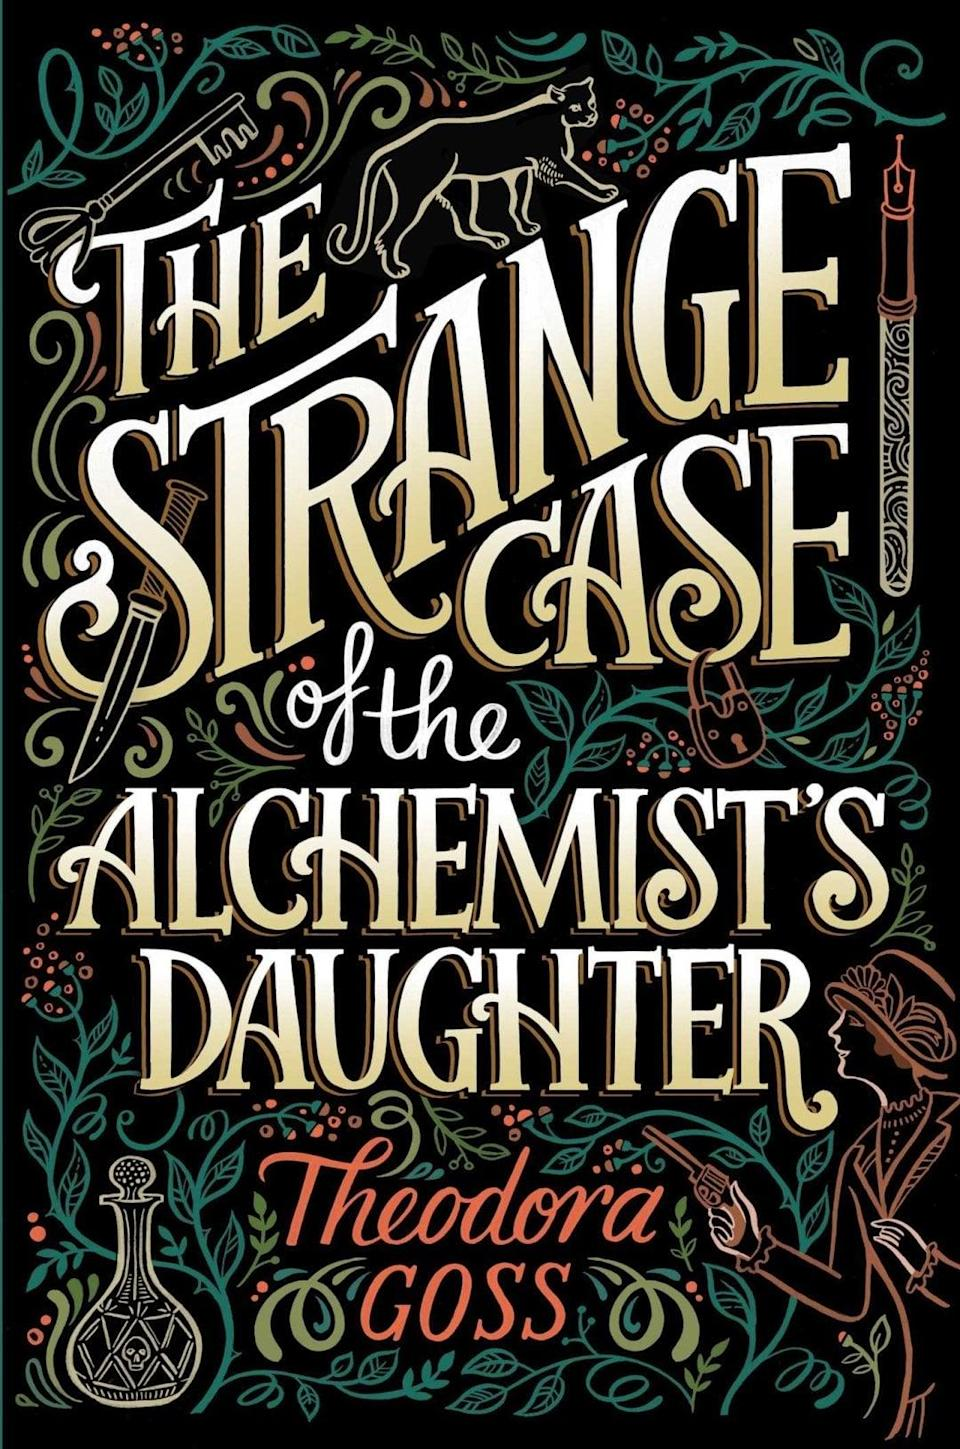 """<p>Theodora Gross's <span><strong>The Strange Case of the Alchemist's Daughter</strong></span> is a monster mashup for people who aren't really into monsters. The daughters of Mr. Jekyll, Dr. Frankenstein, Mr. Moreau, and Rappaccini team up with Sherlock Holmes and Dr. Watson to solve mysteries in London. This is a rollicking read with all of the spooky fun of <a class=""""link rapid-noclick-resp"""" href=""""https://www.popsugar.com/Halloween"""" rel=""""nofollow noopener"""" target=""""_blank"""" data-ylk=""""slk:Halloween"""">Halloween</a> minus the actual scares.</p>"""